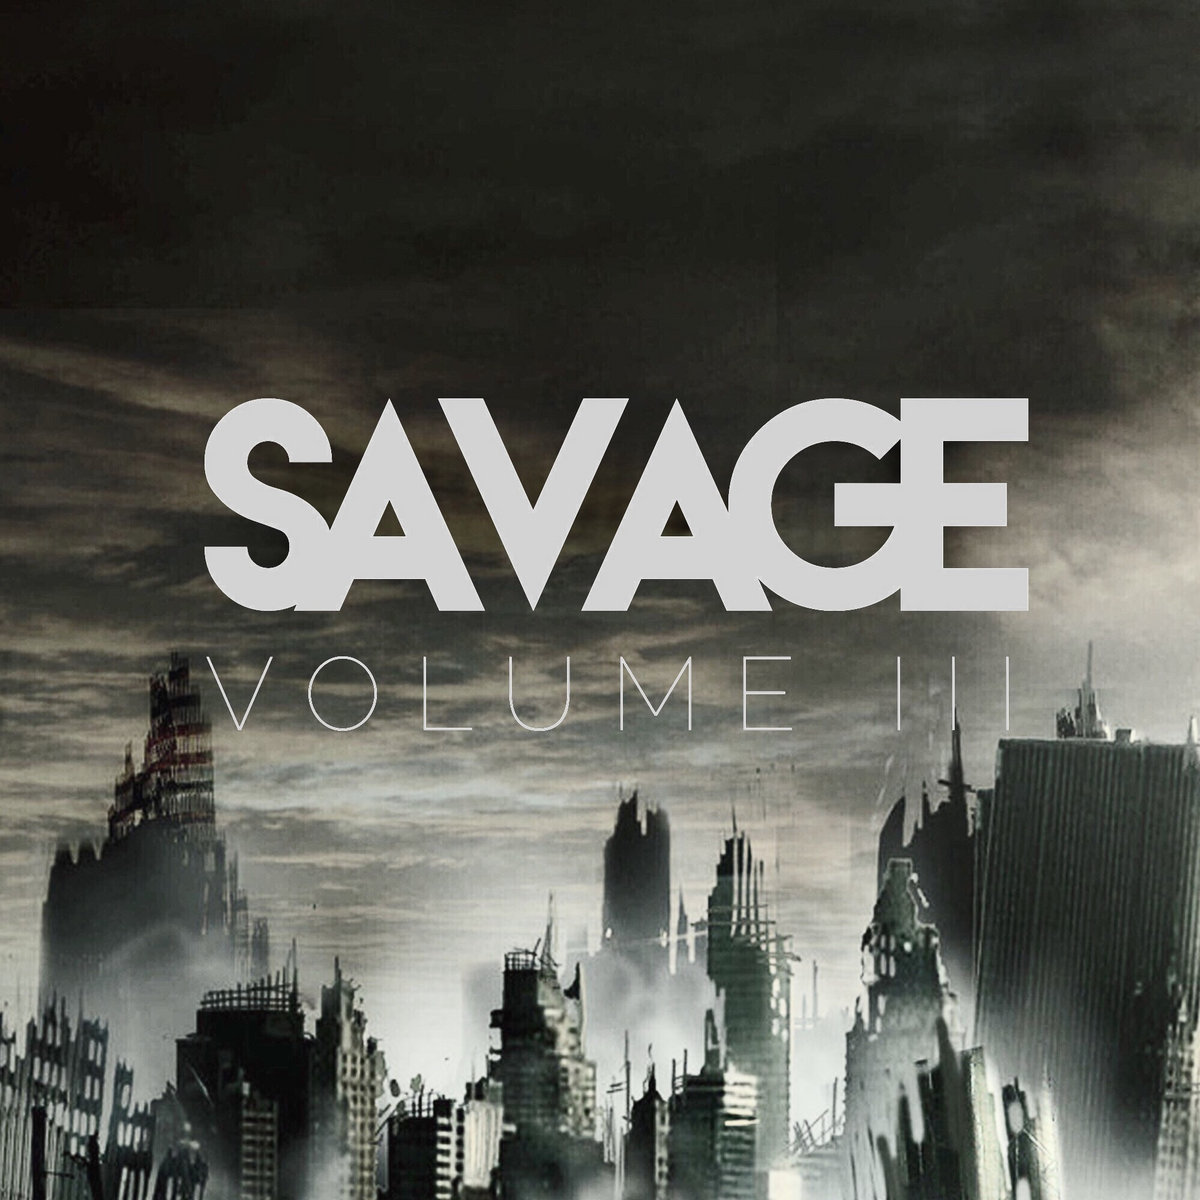 SAVAGE VOLUME III | Savage Kul...